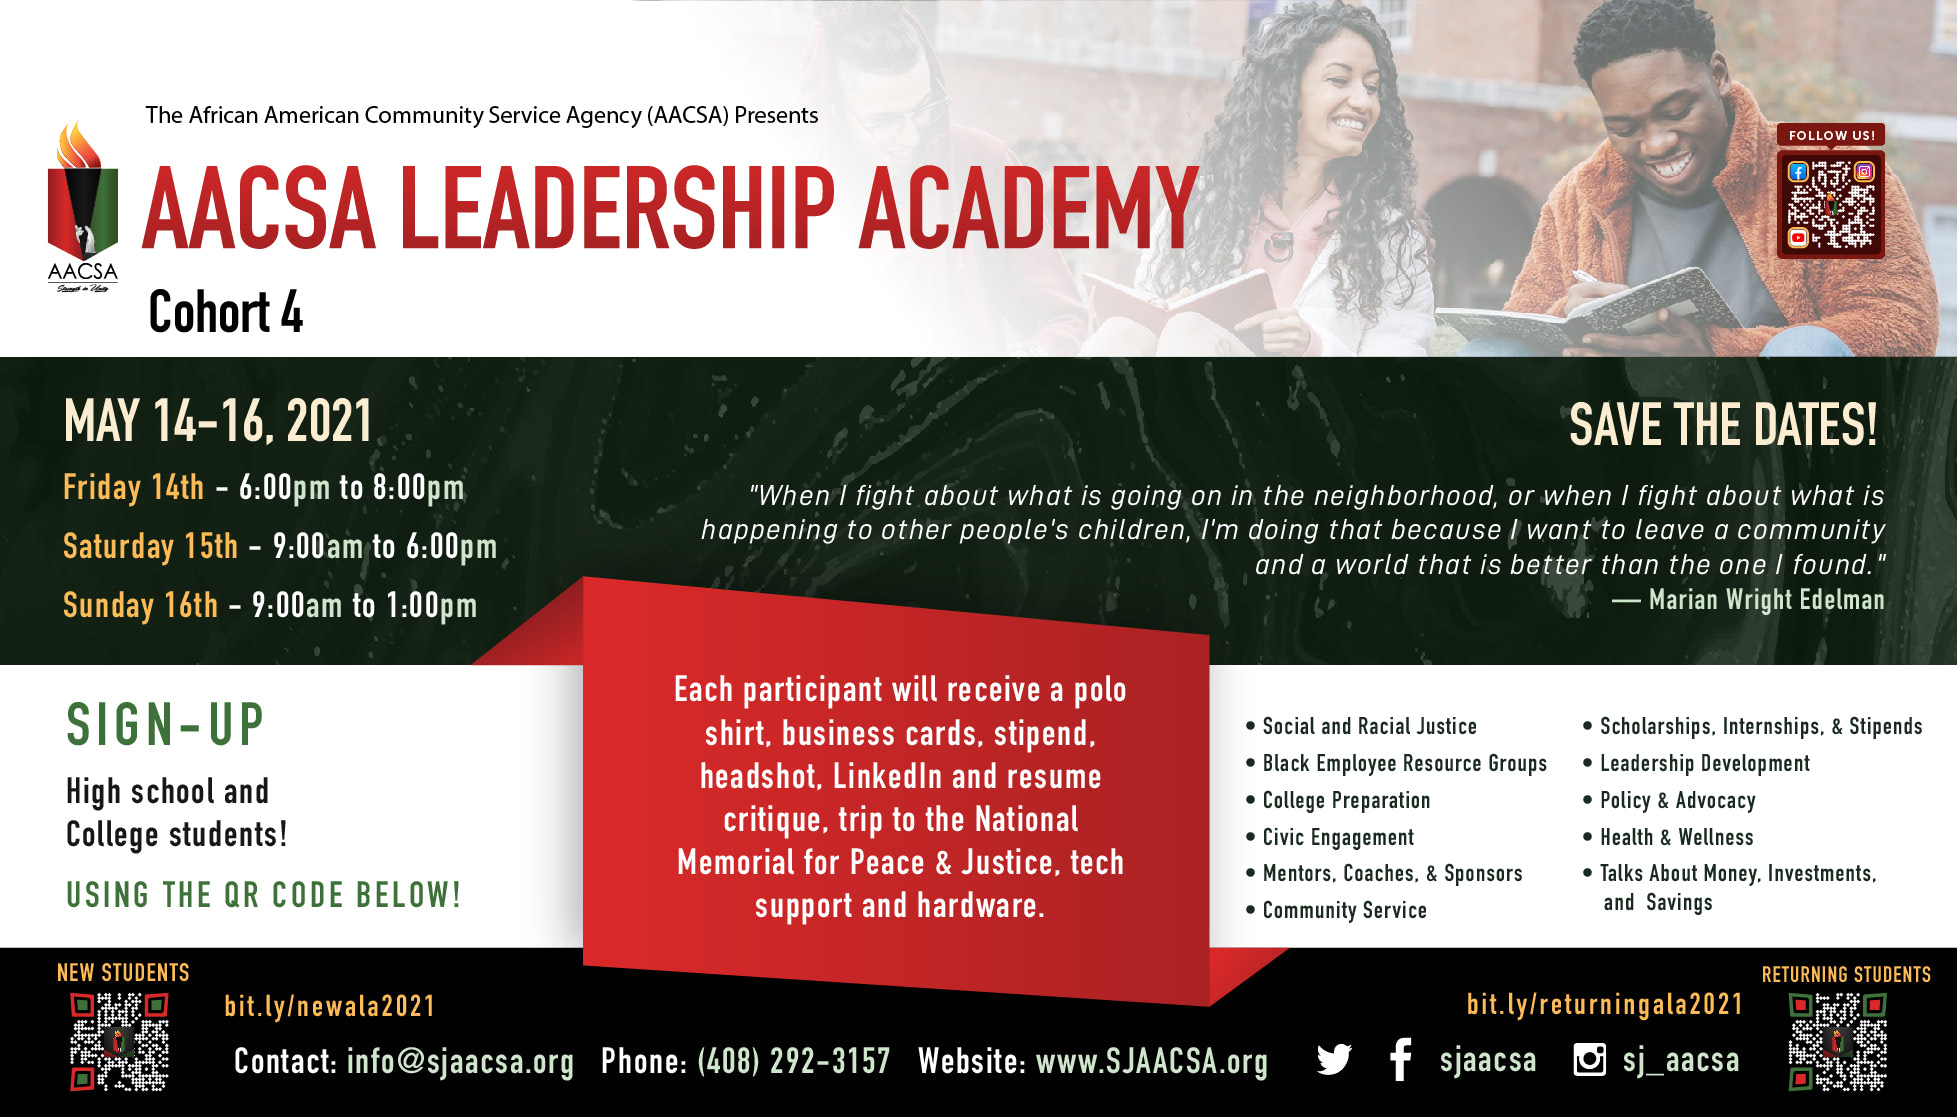 Banner for the AACSA Event: AACSA Leadership Academy Cohort 4  Banner. Event Dates: Friday May 14th, 6:00pm to 8:00pm, Saturday May 15th, 9:00am to 4:00pm, and Sunday May 16th 9:00am to 1:00pm. For high school and college students. To register, new students visit bit.ly/newala2021. Returning students, visit bit.ly/returningala2021.